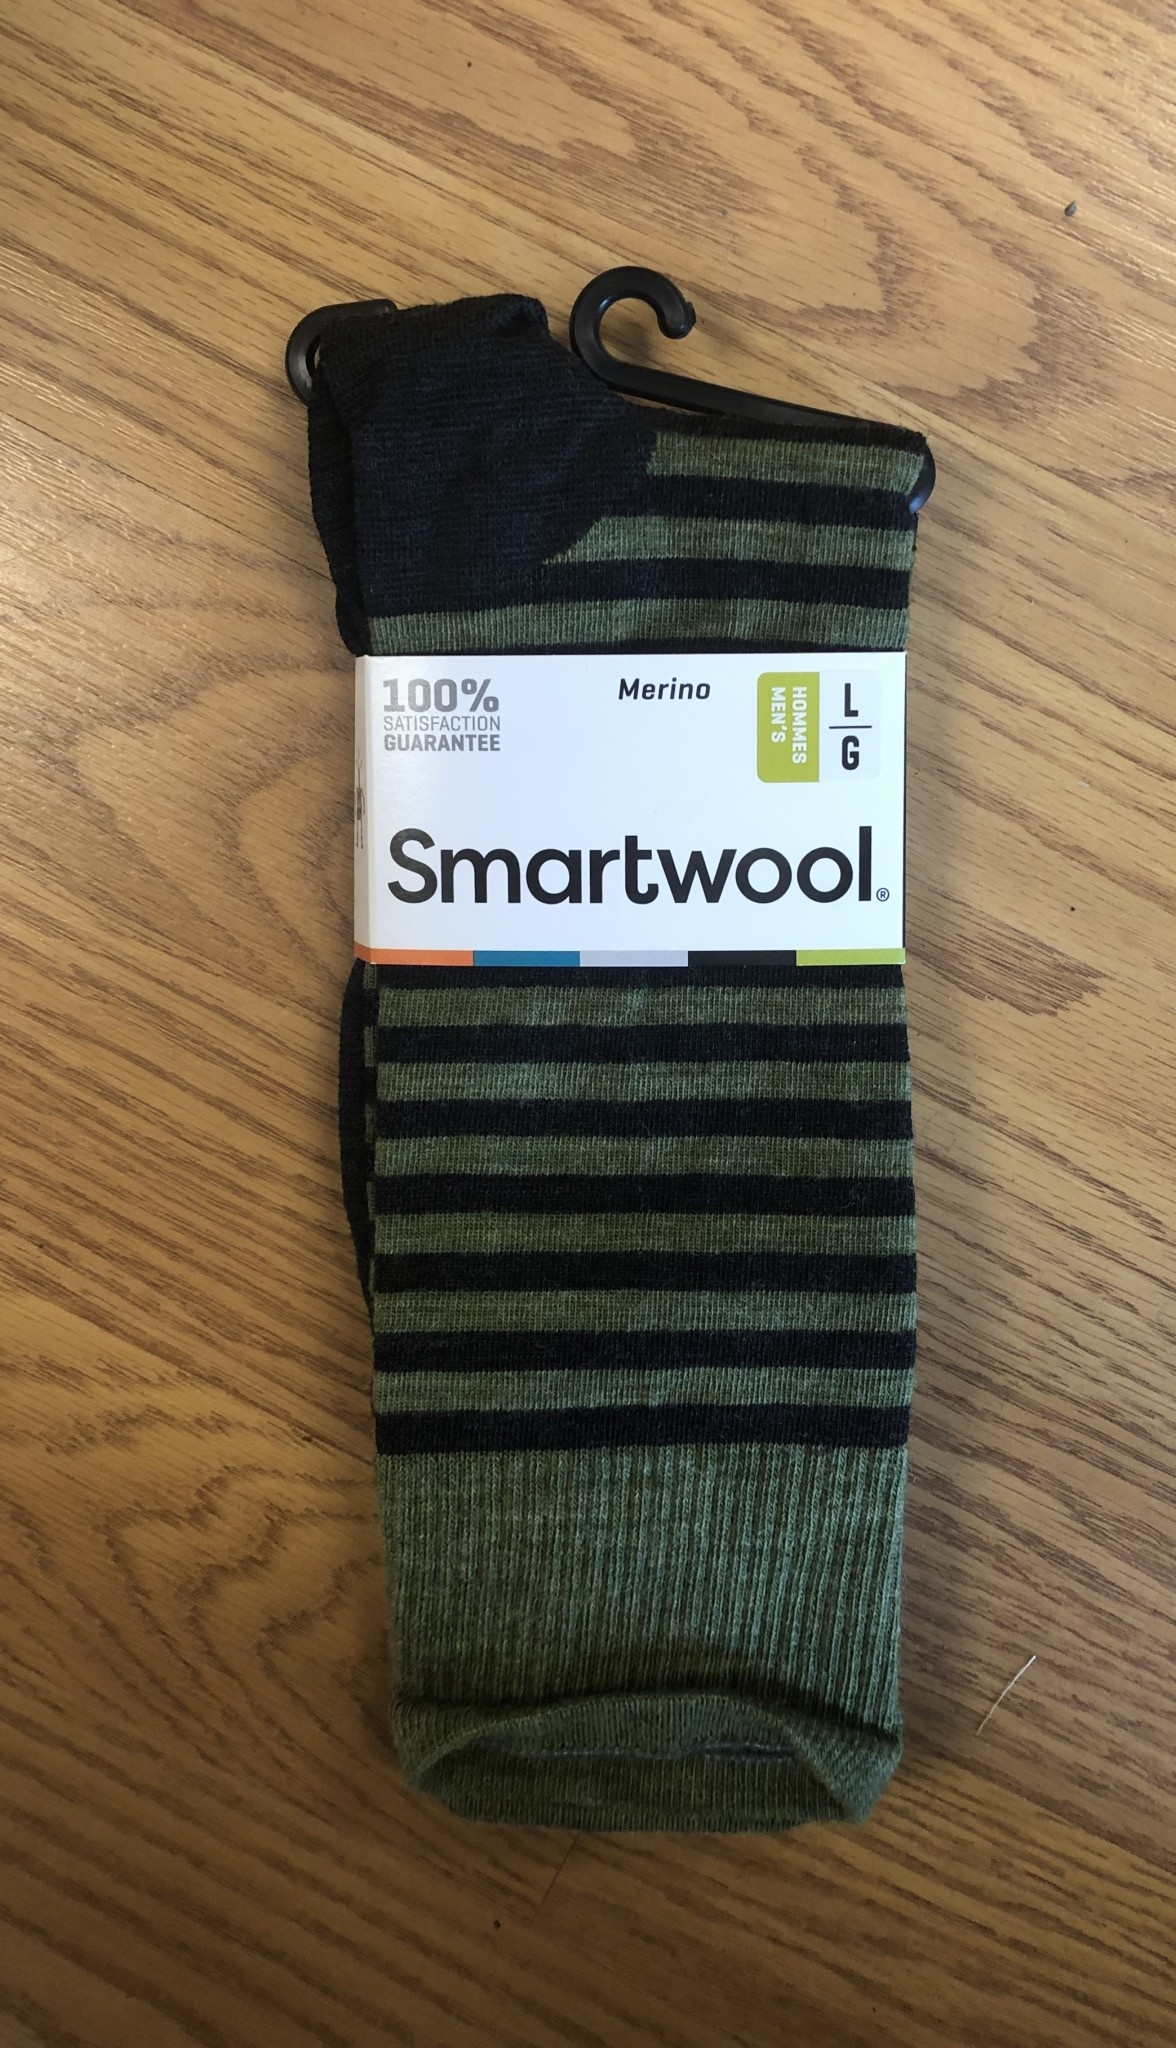 Smartwool Smartwool Men's Stria Crew Socks,